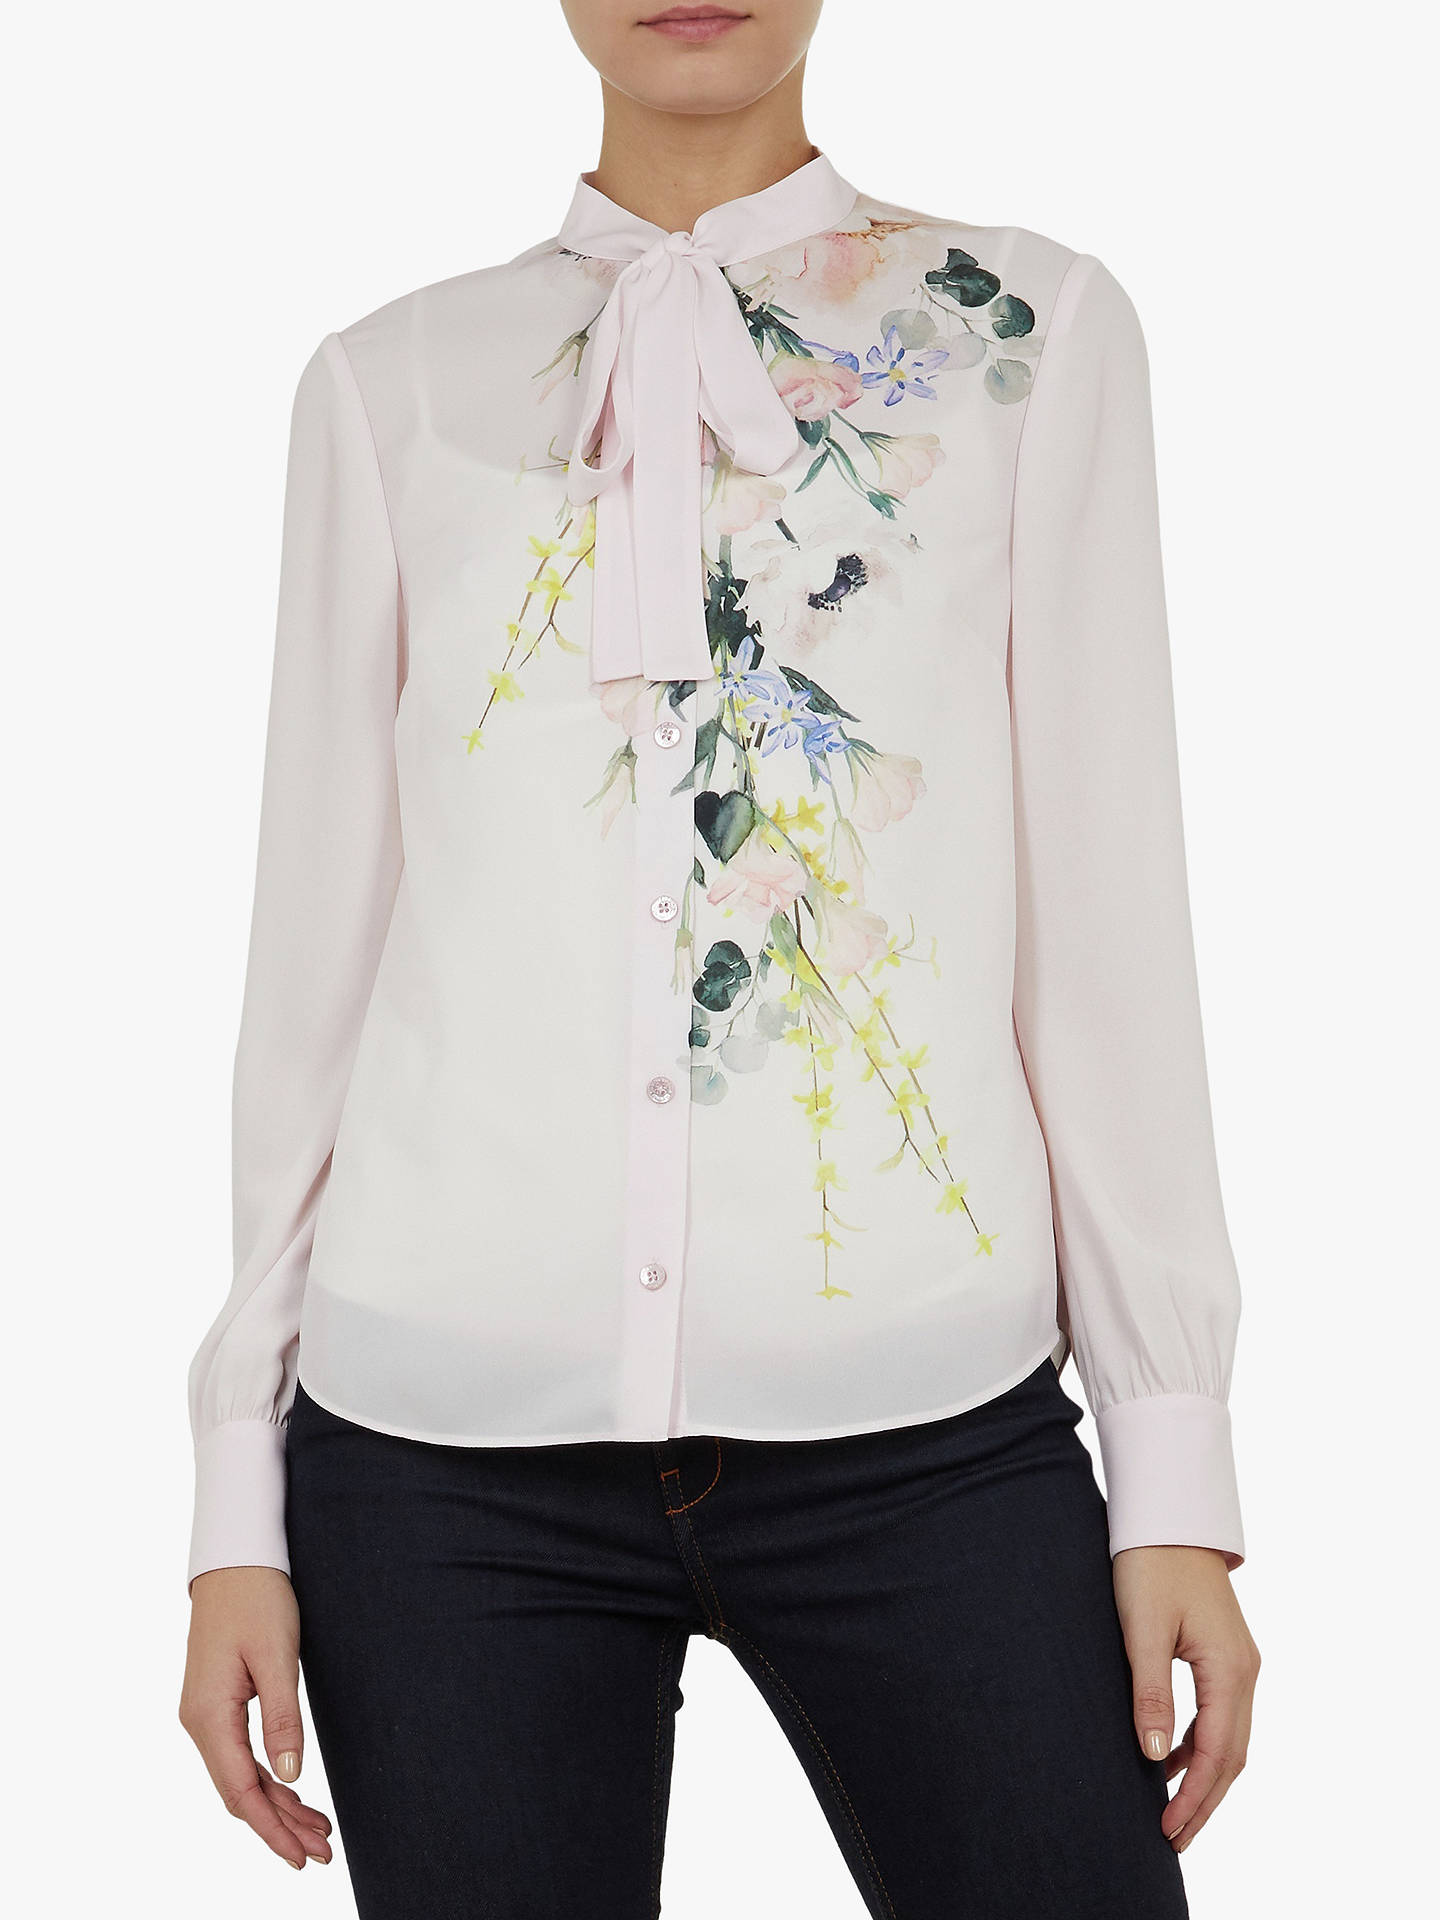 Ted Baker Lovii Tie Neck Floral Shirt, Pink Nude by Ted Baker